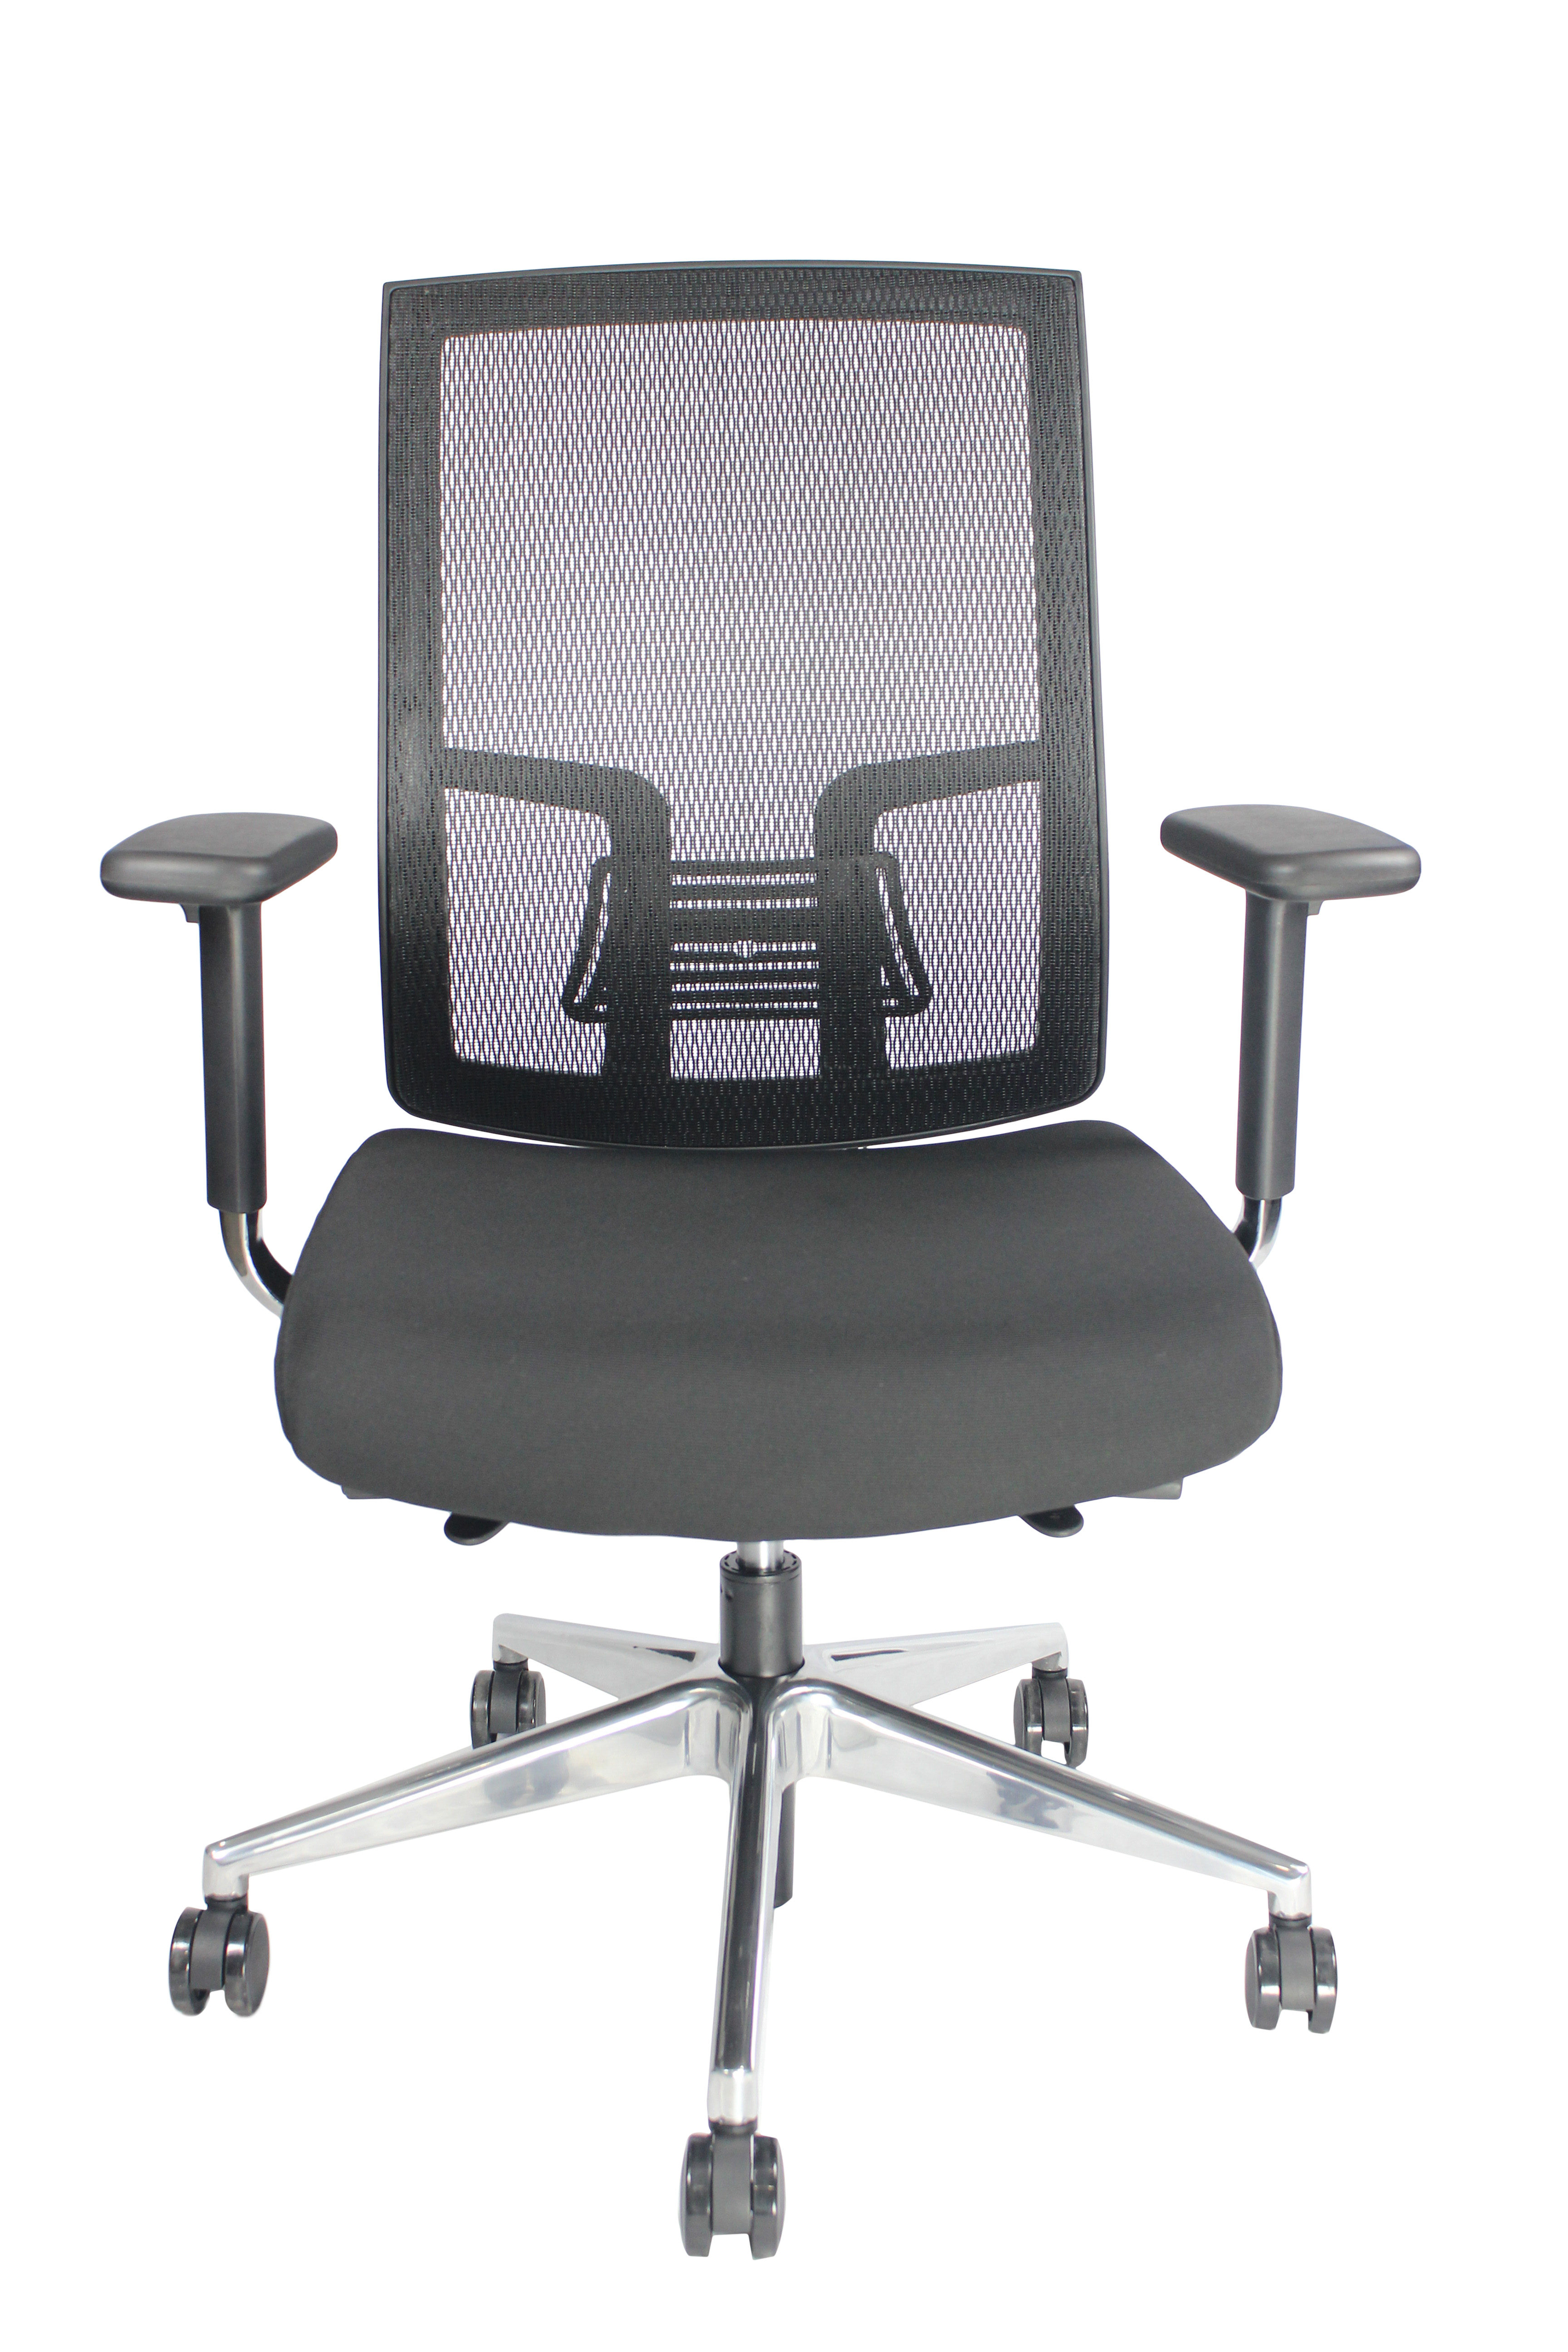 Large ergonomic manager office chair sydney